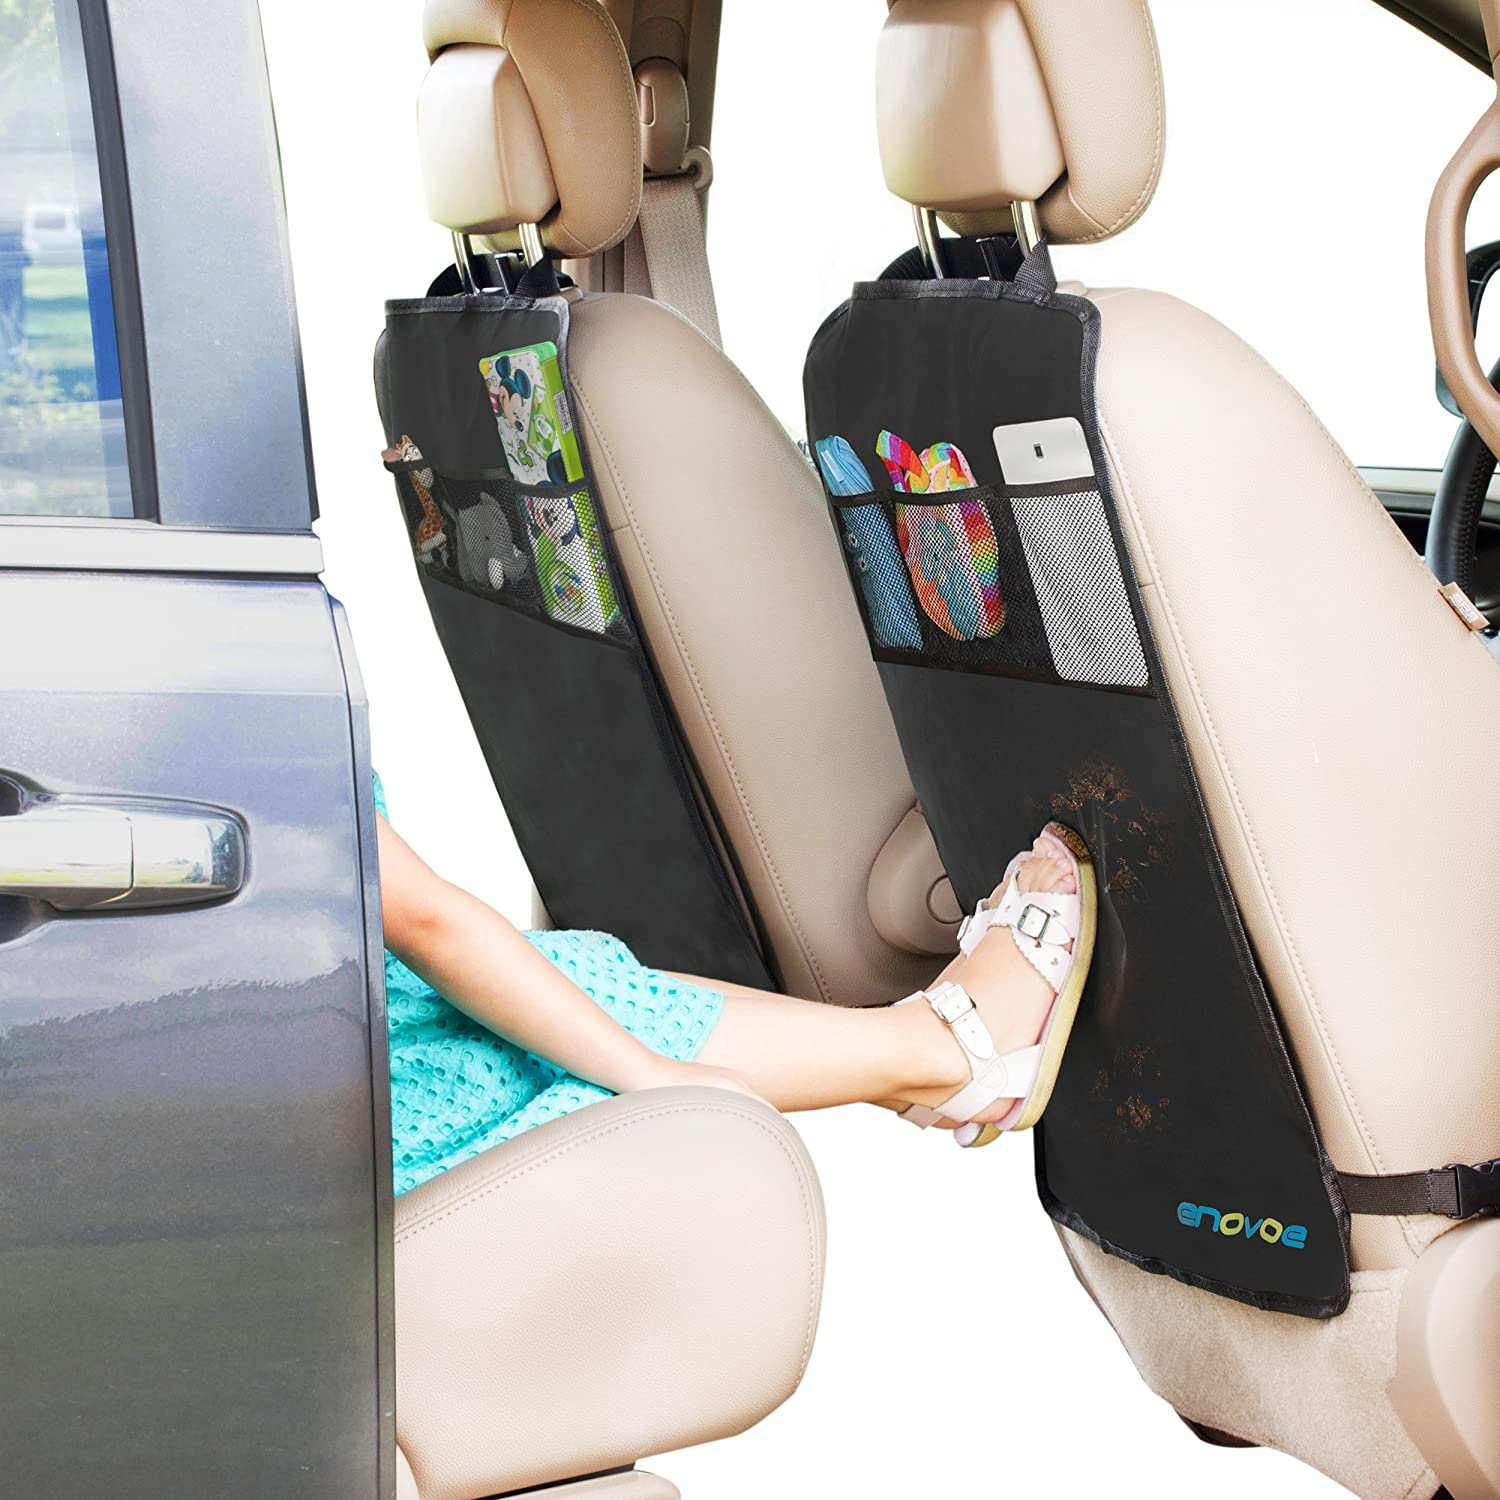 Enovoe Kick Mats with Back Seat Organizer - Premium Car Backseat Protector with Storage Pockets for The Backseat of Your Car - 2 Pack